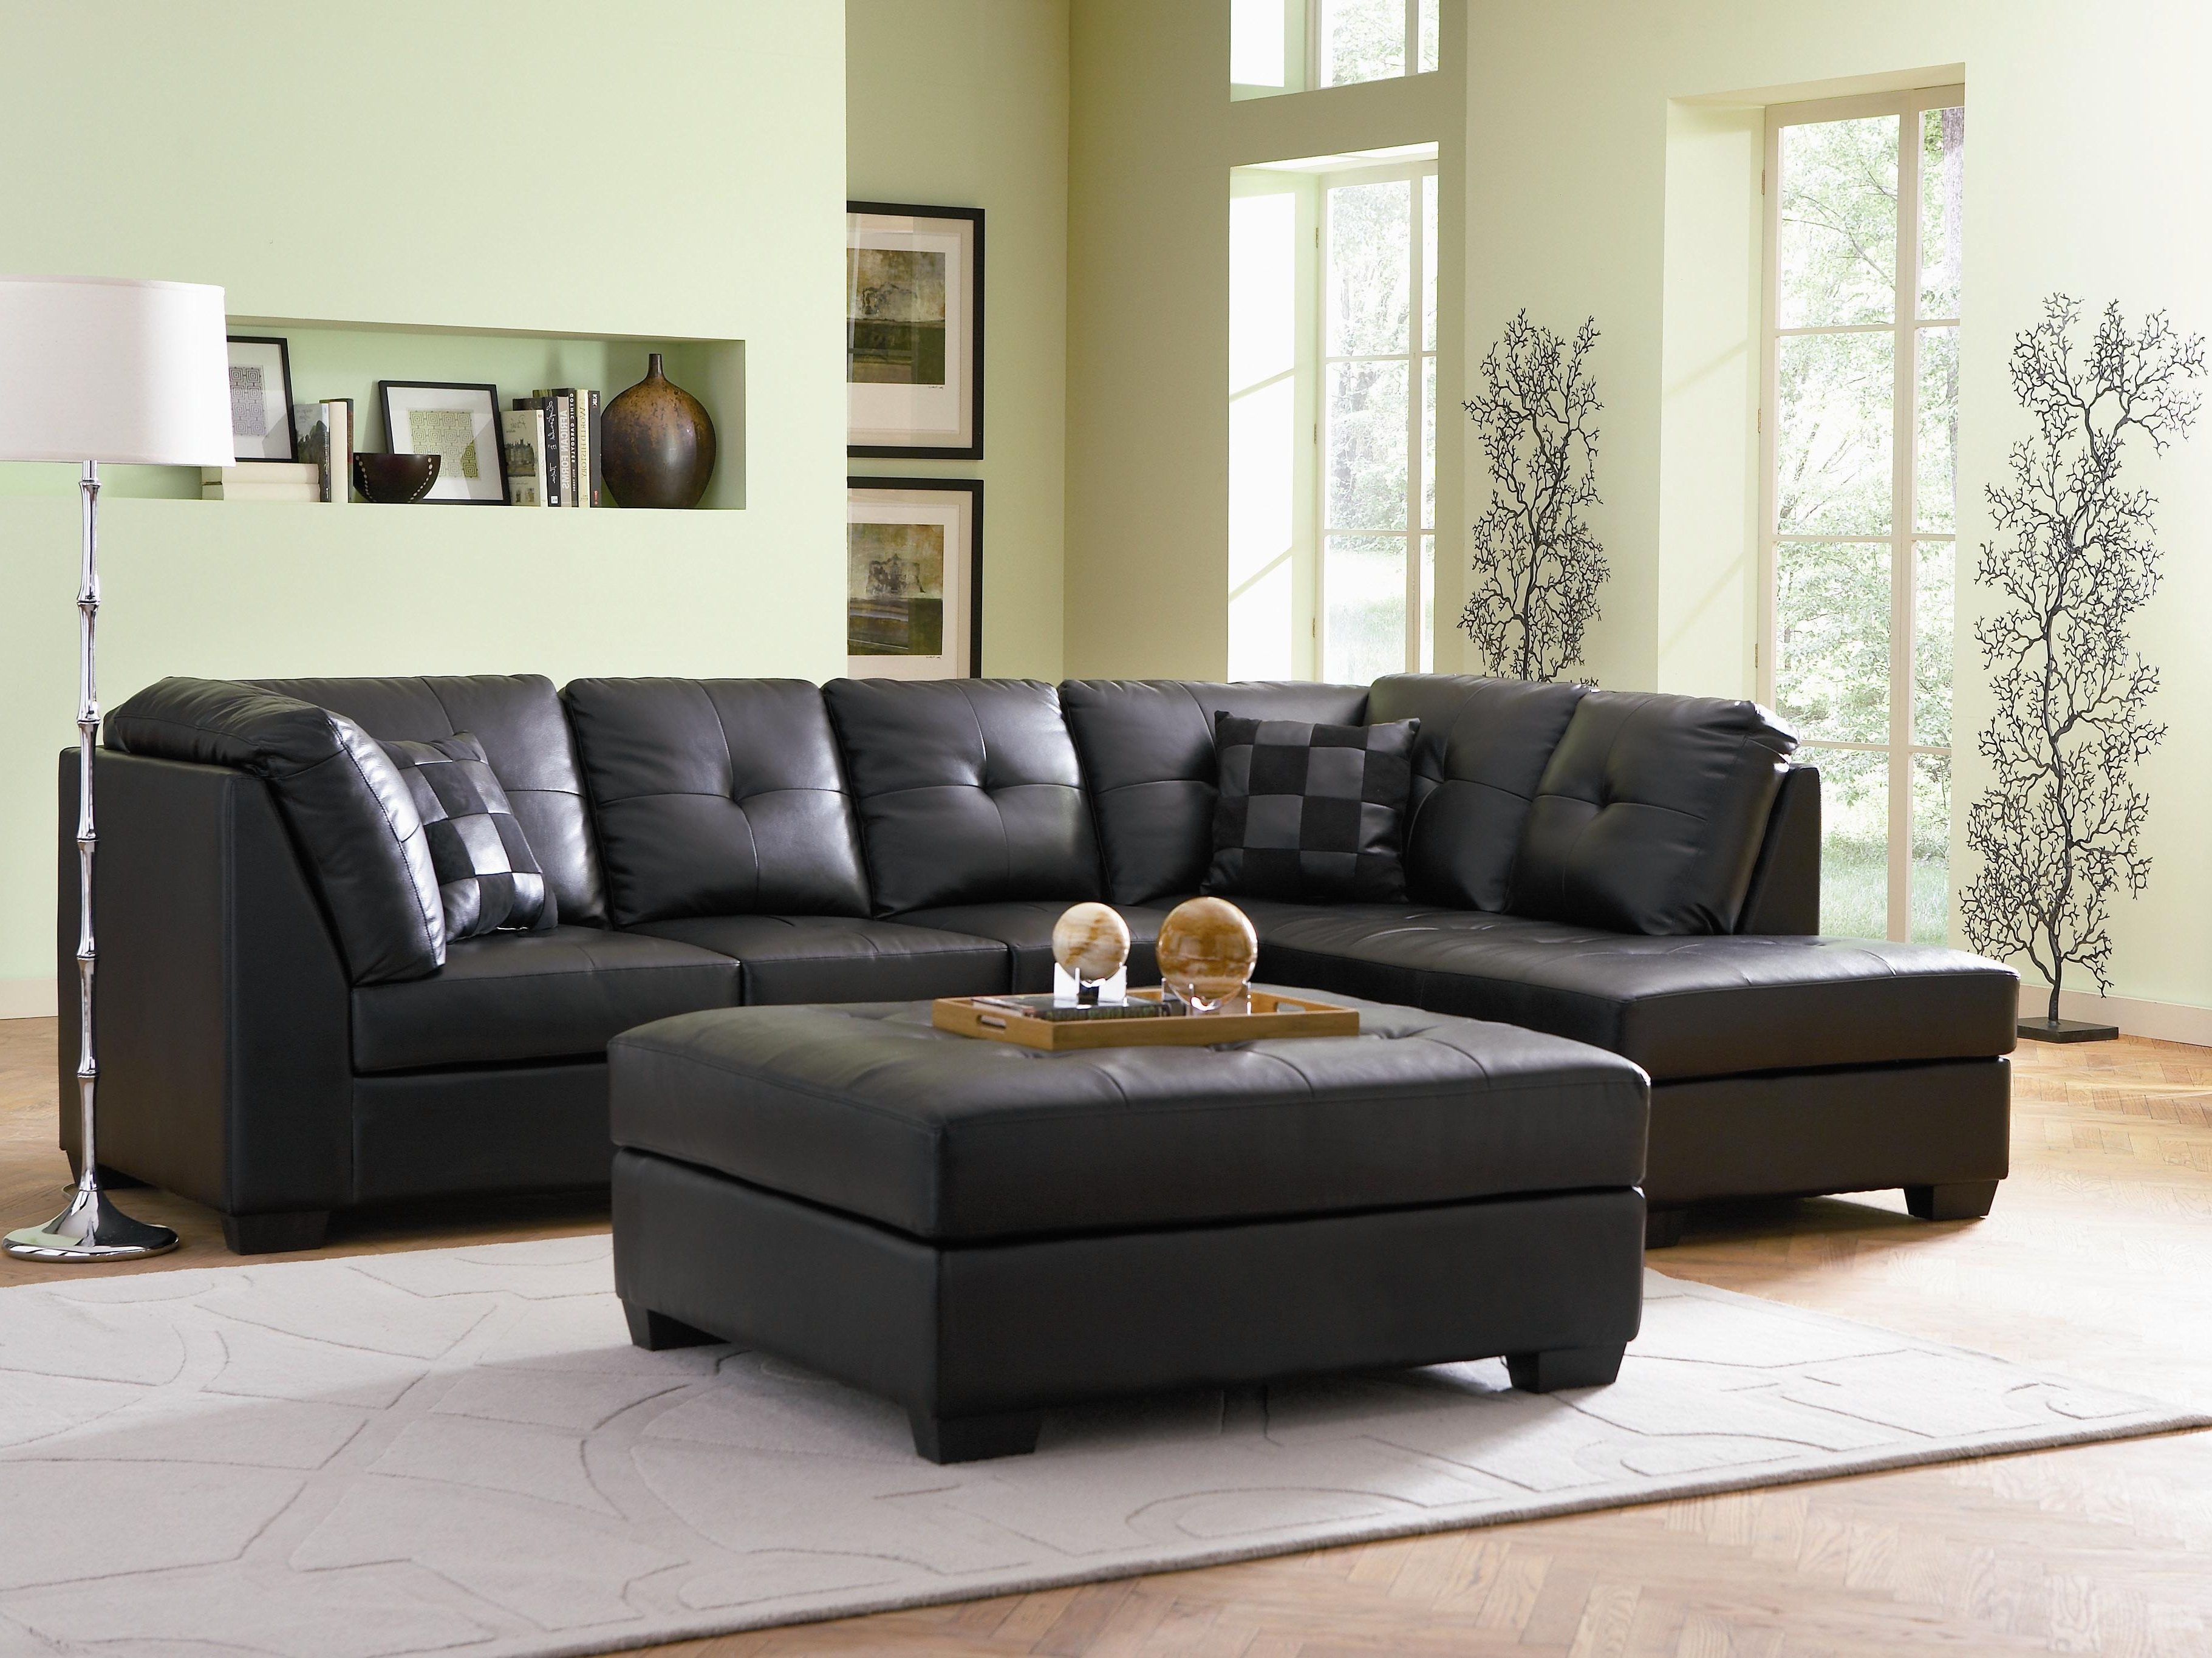 2019 Small Sectional Sofas With Chaise And Ottoman Pertaining To Darie Contemporary Style Black Bonded Leather Sofa Sectional W (View 1 of 20)